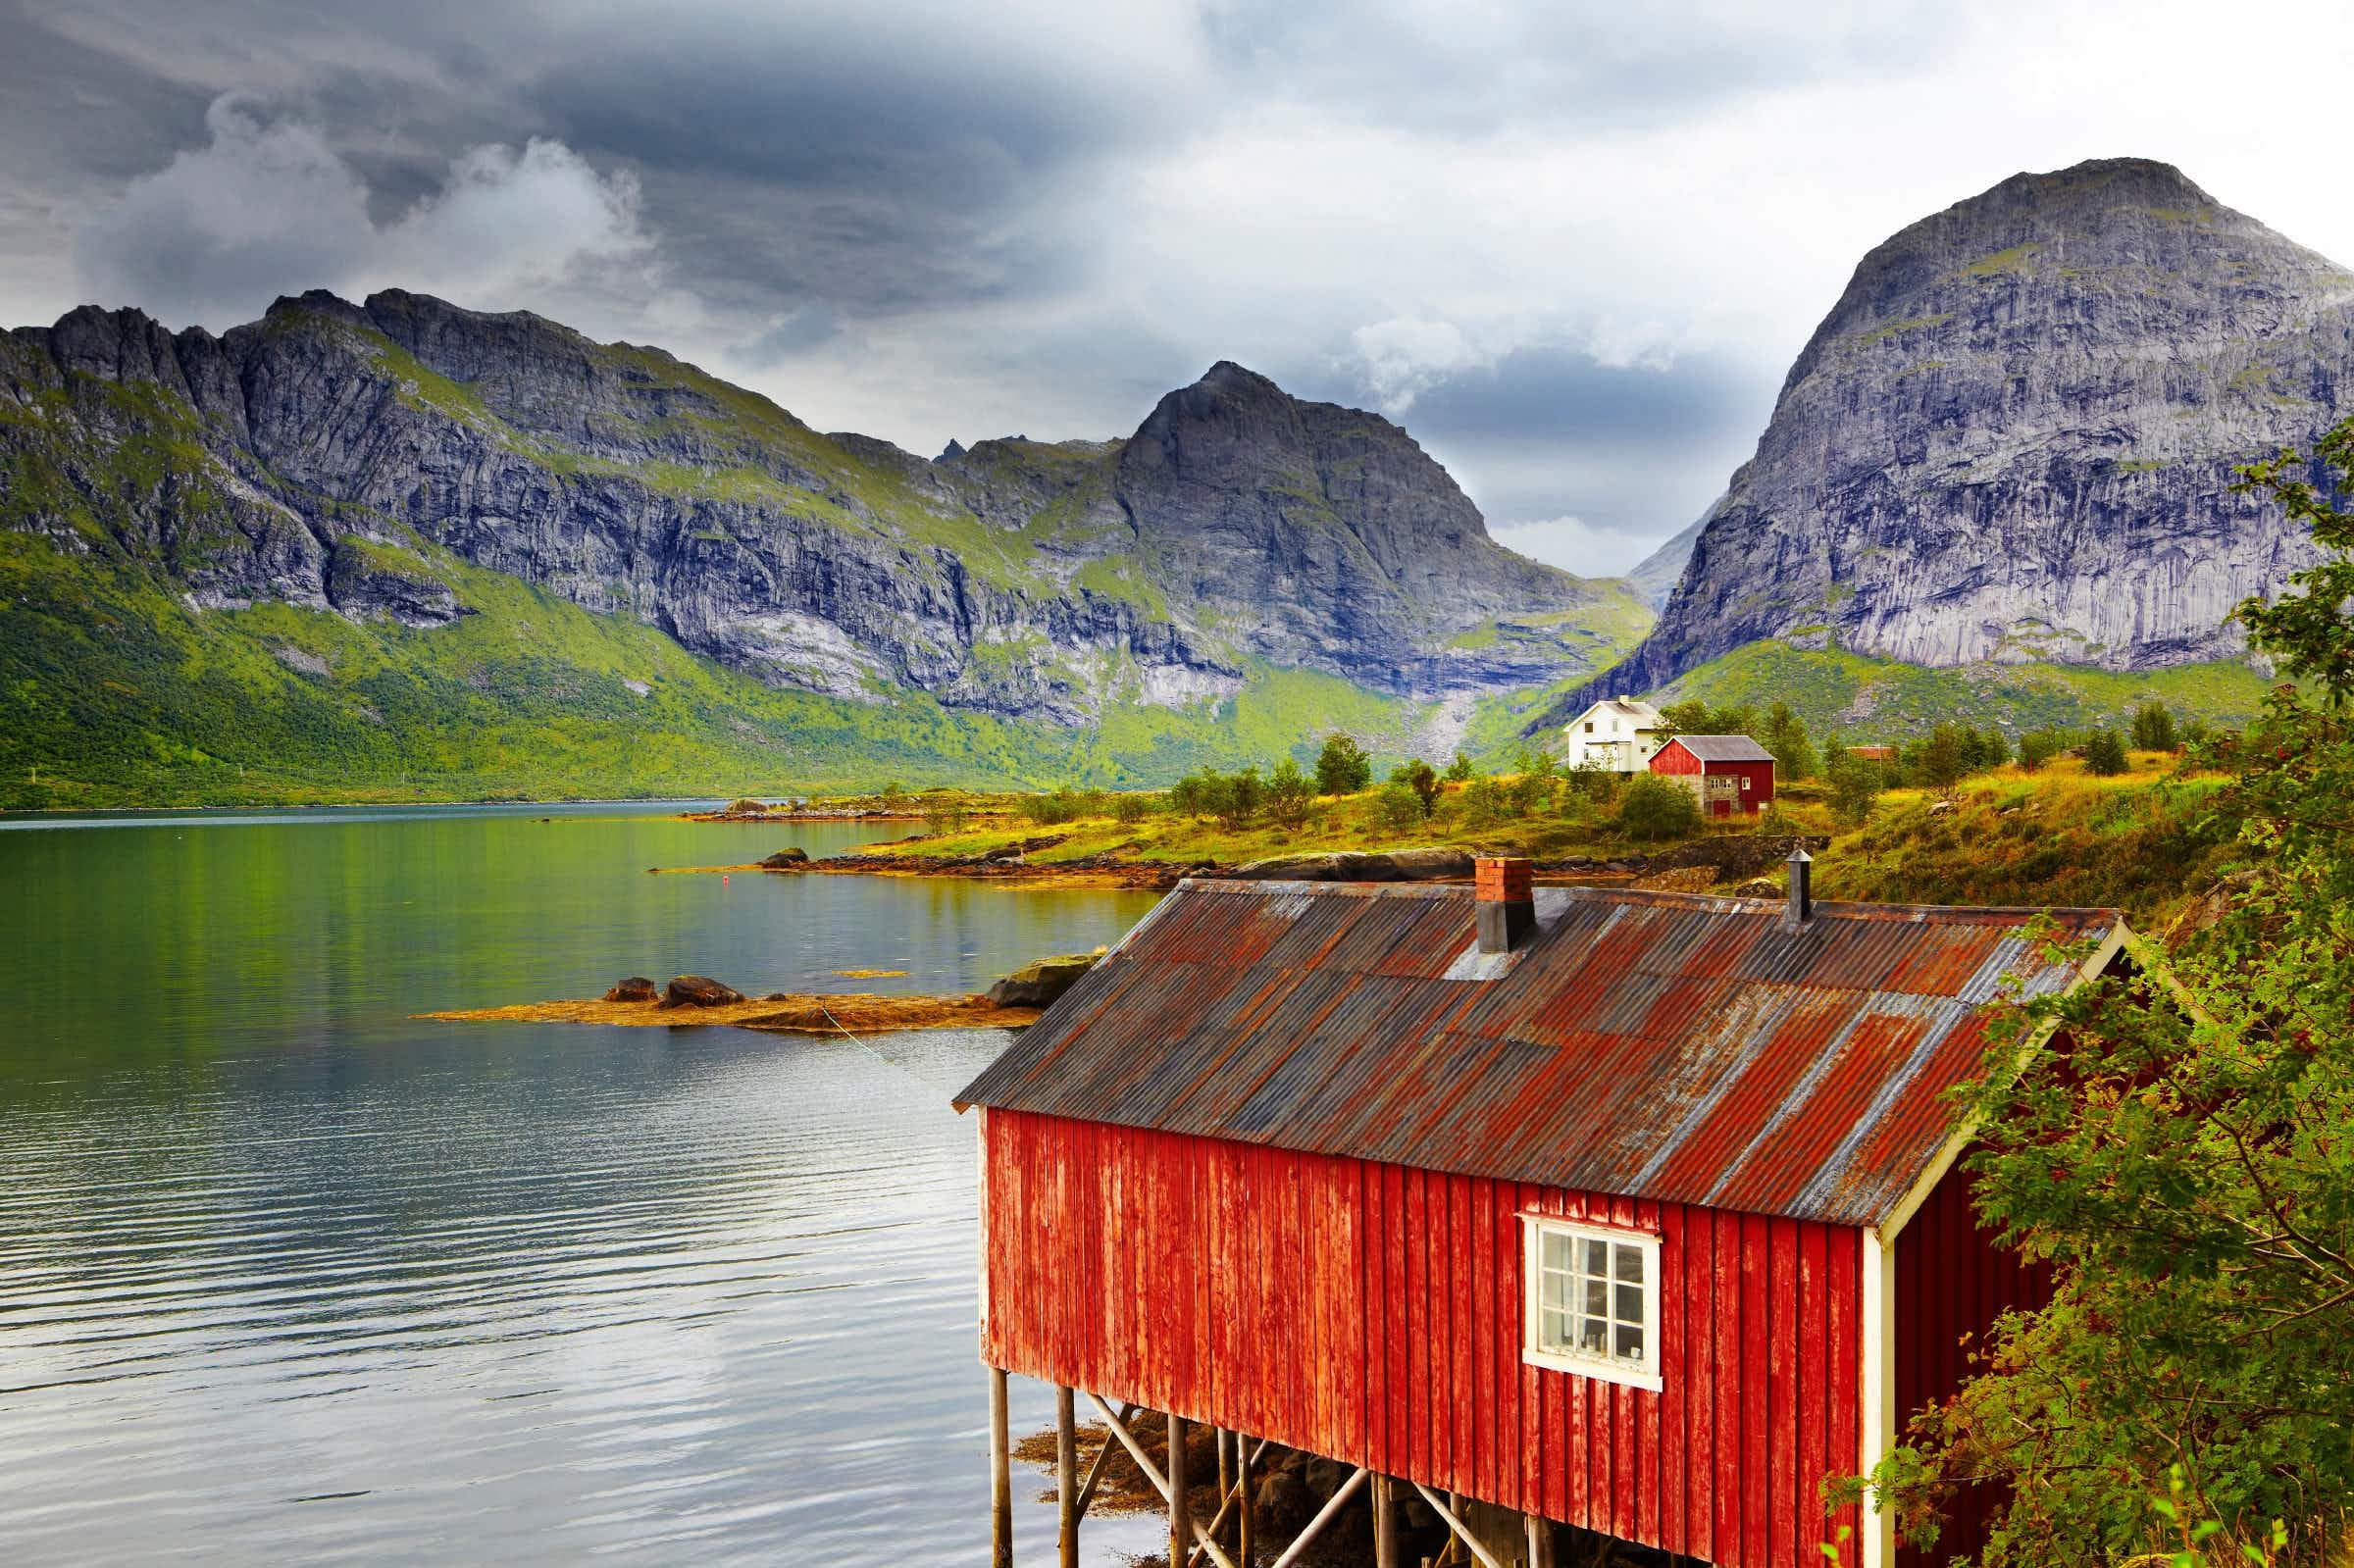 Spend two weeks travelling Norway this summer with an all-you-can-fly pass